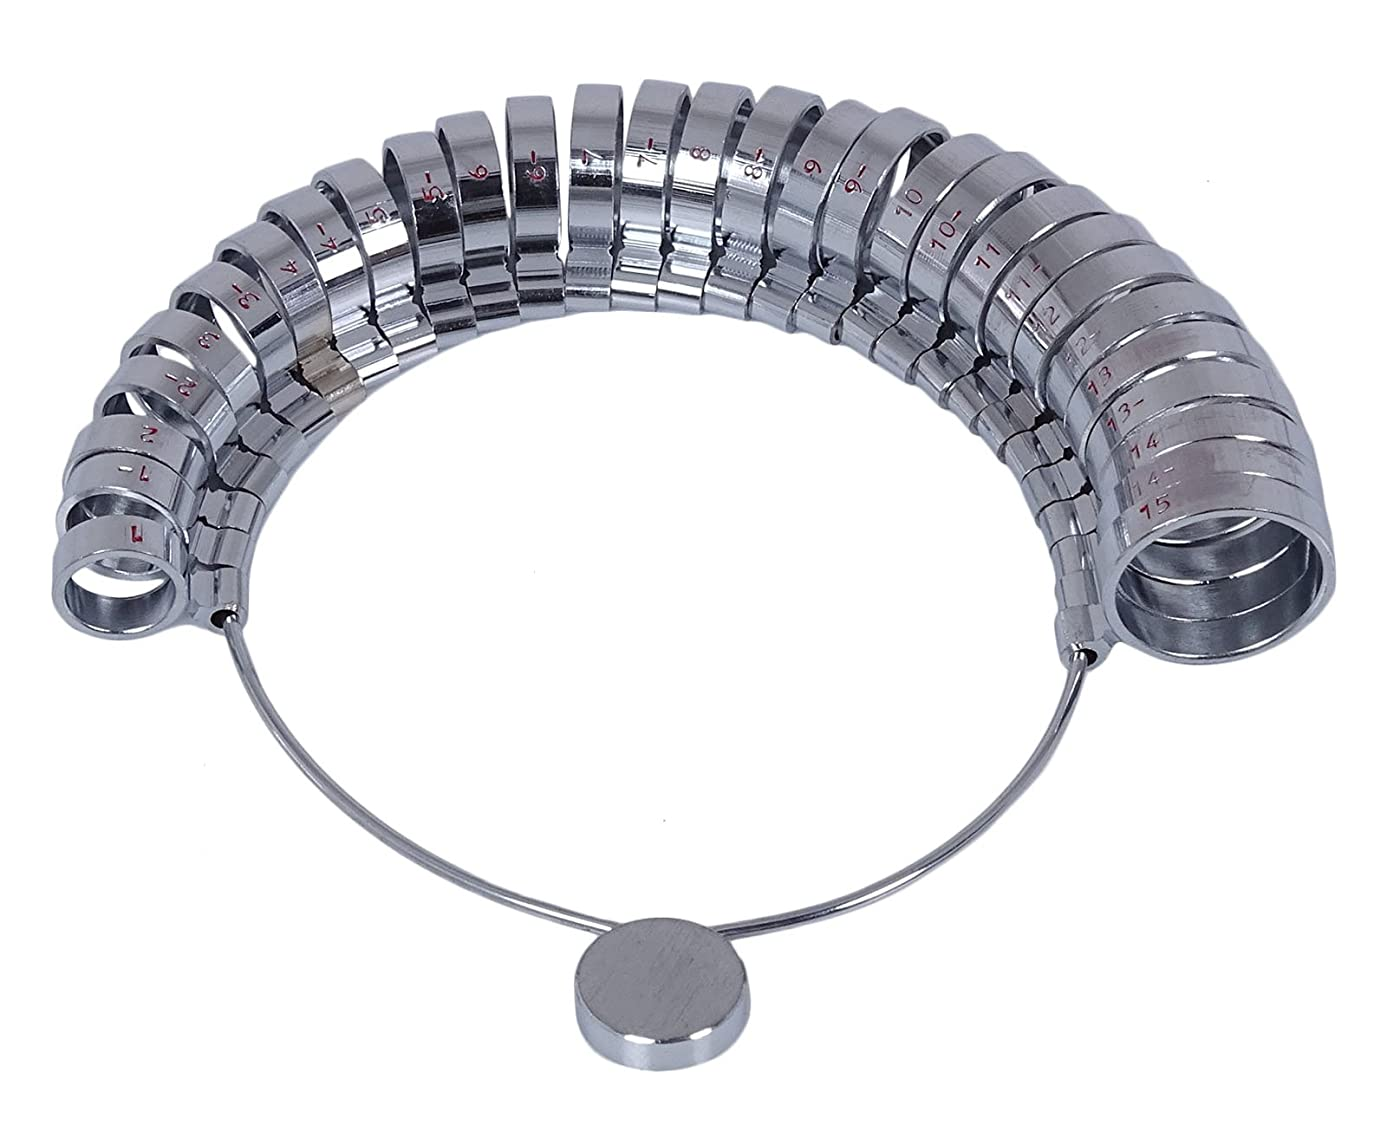 ManOnMoon Stainless Steel Measure Wide Finger Sizer Ring Gauge Jewelry Tool - 1 to 15 US Size